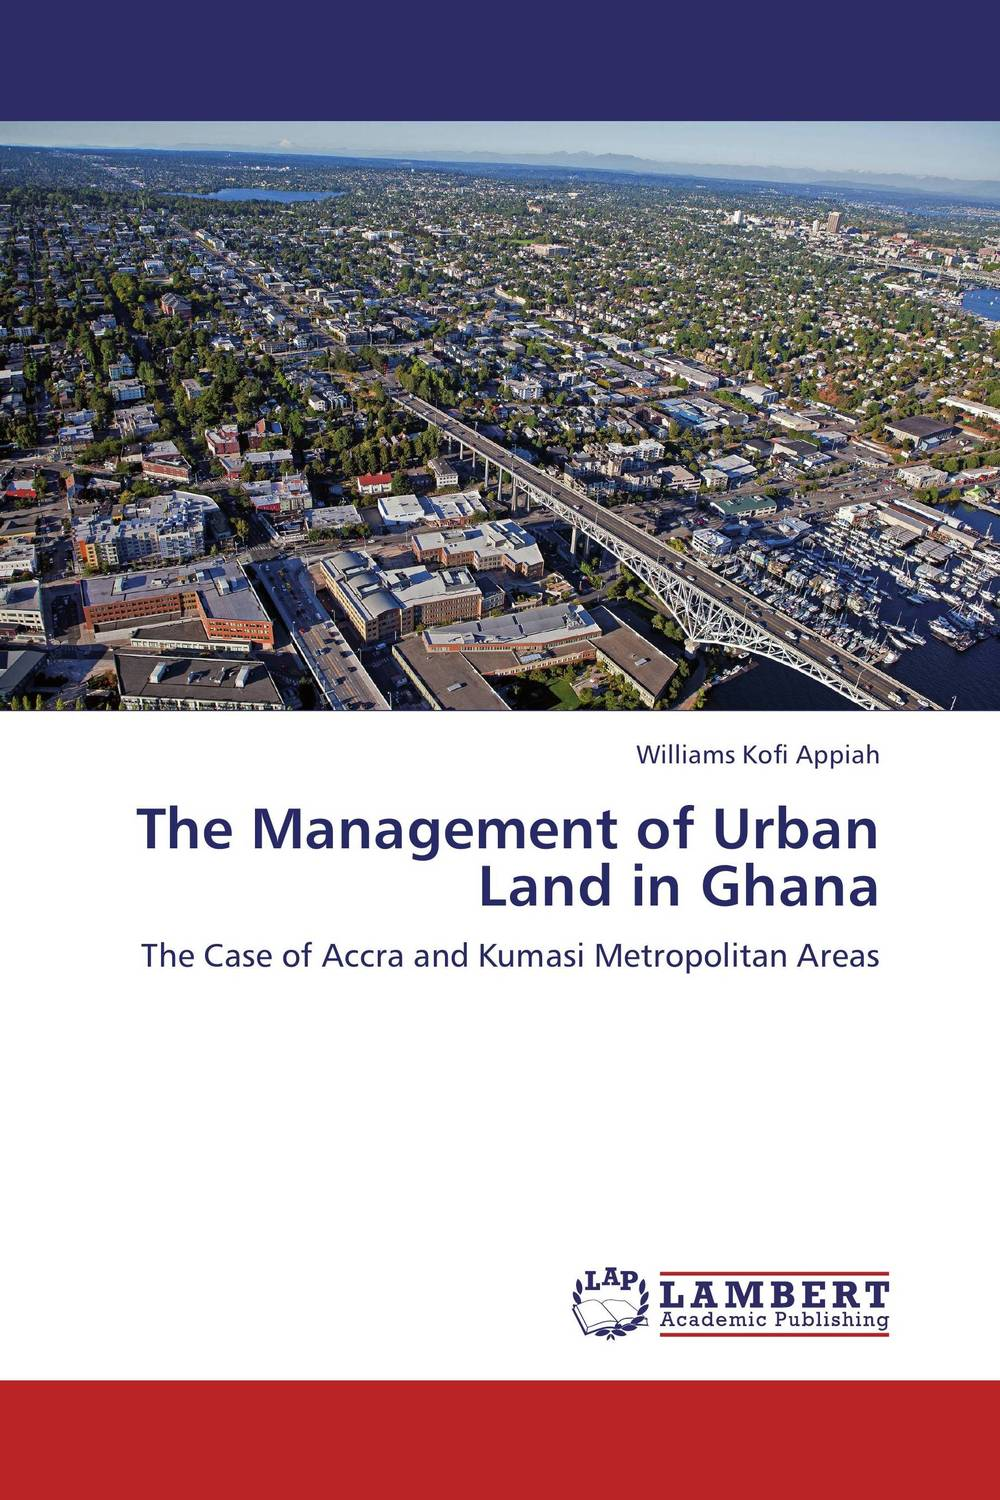 The Management of Urban Land in Ghana manuscript found in accra